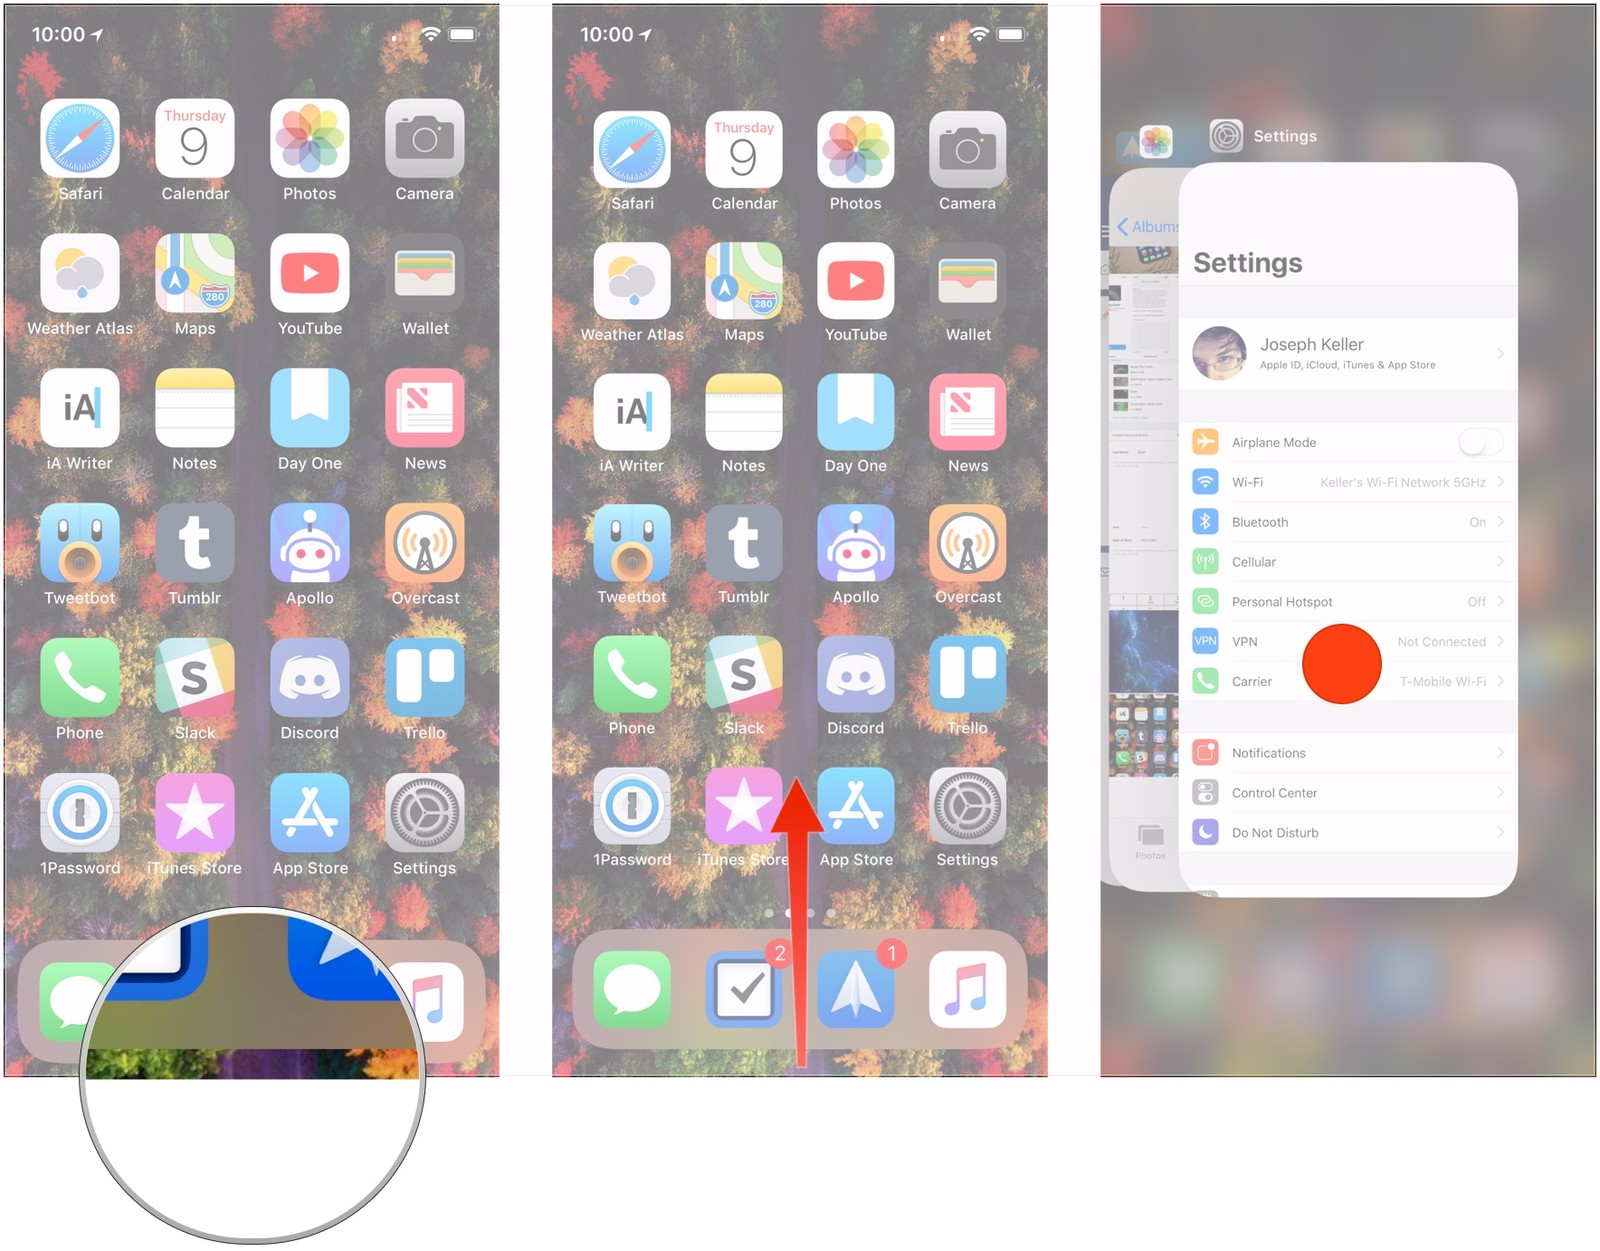 How to use music as ringtone on iphone 6s